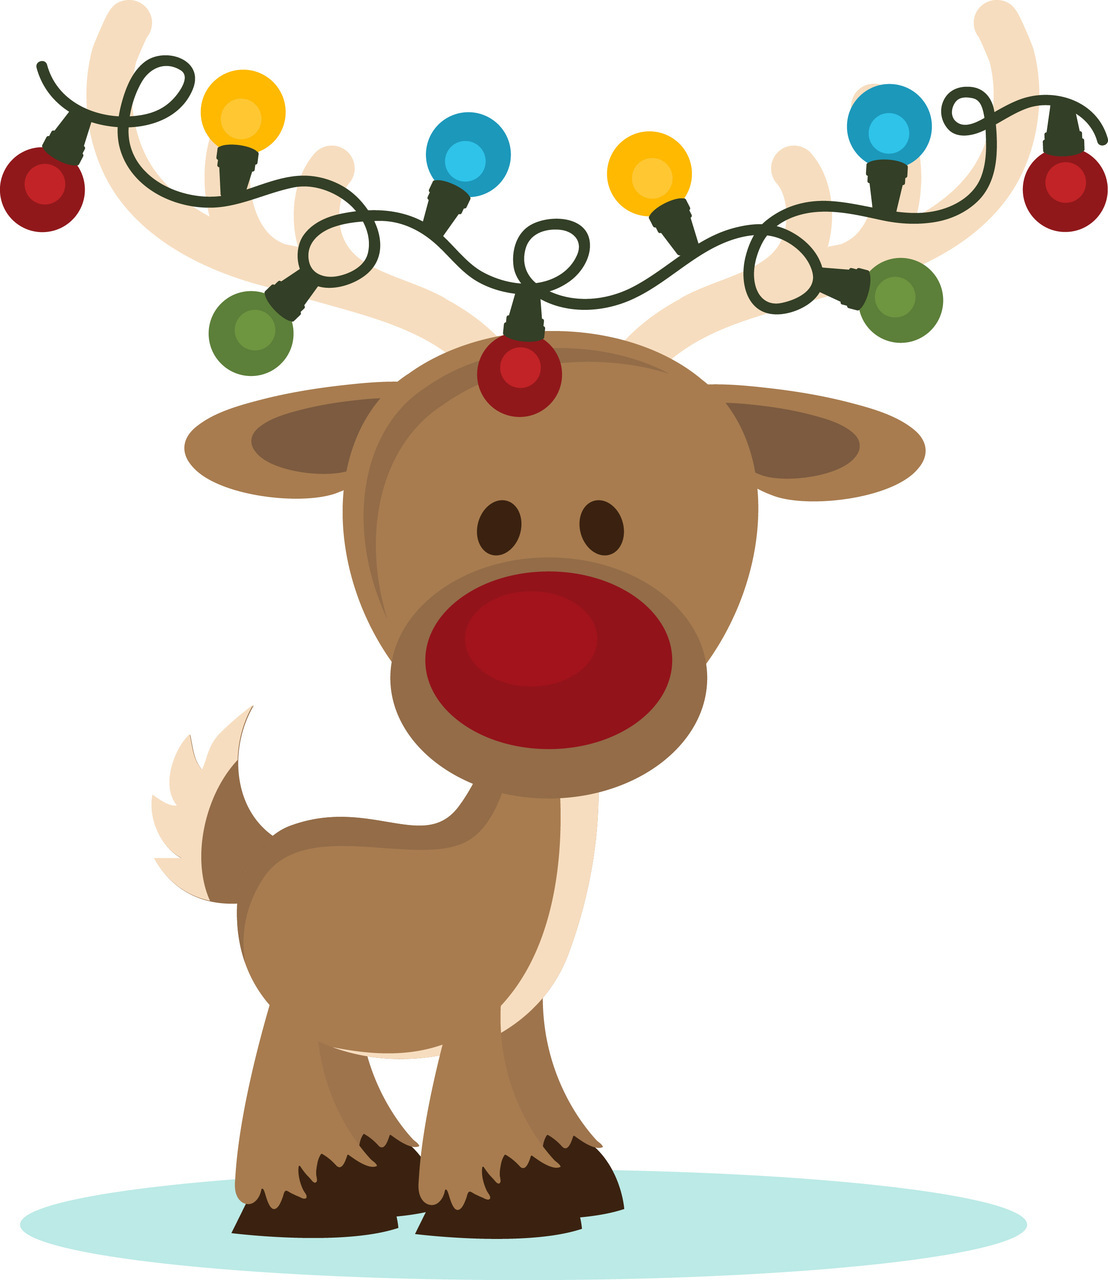 ... Christmas Clipart, Gingerbread Graphics. Ppbn Designs You Do Not Have Permission To Access This Page